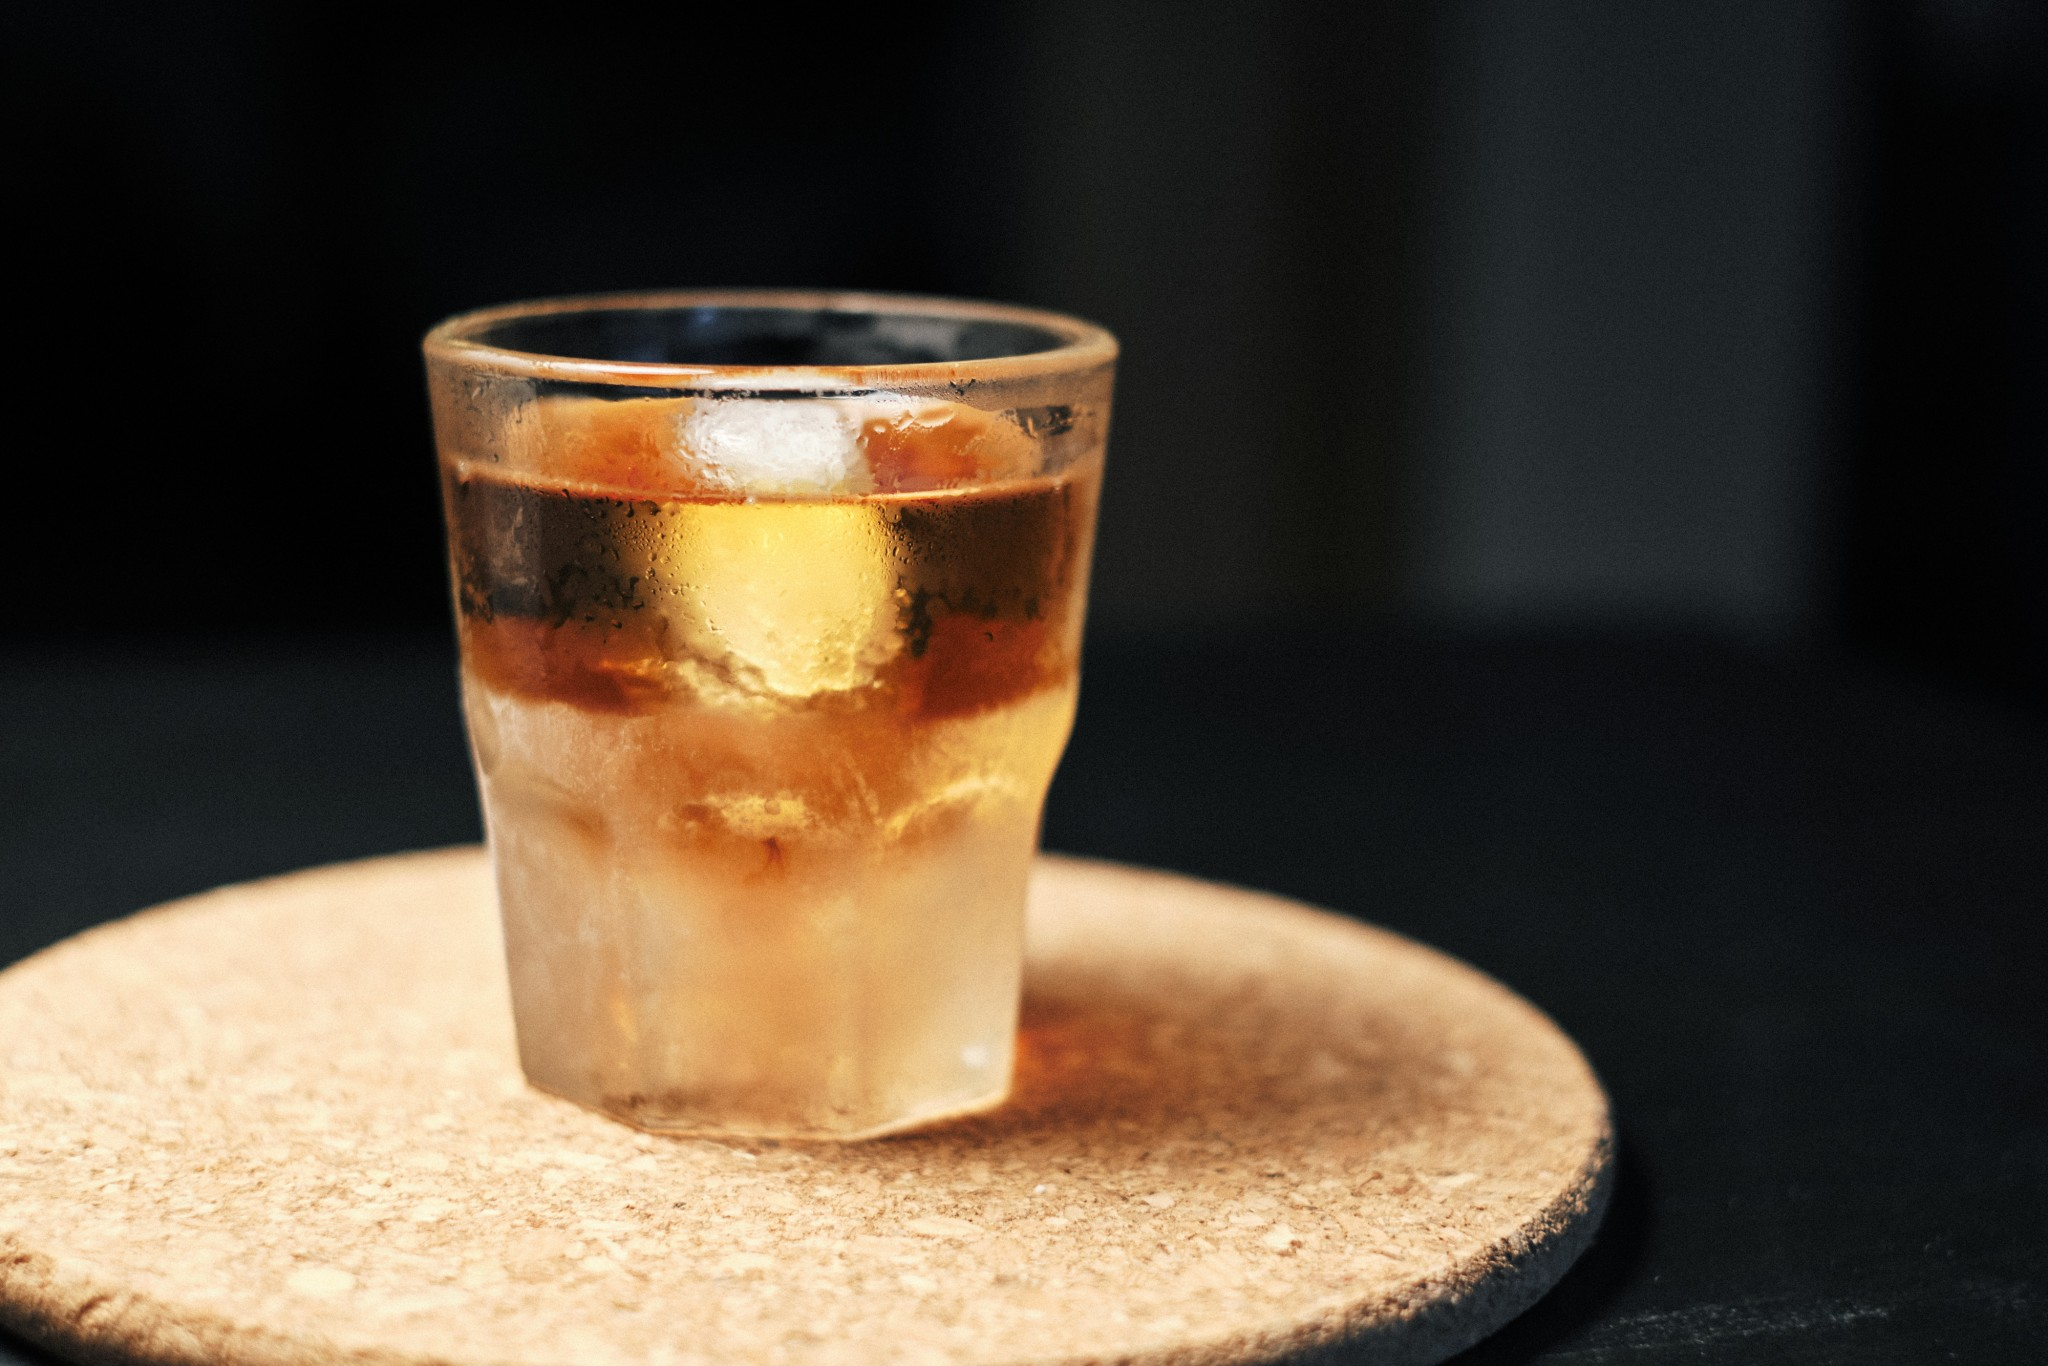 02---Burnside-Goose-Hollow-RSV-Bourbon-chilled-glass.jpg